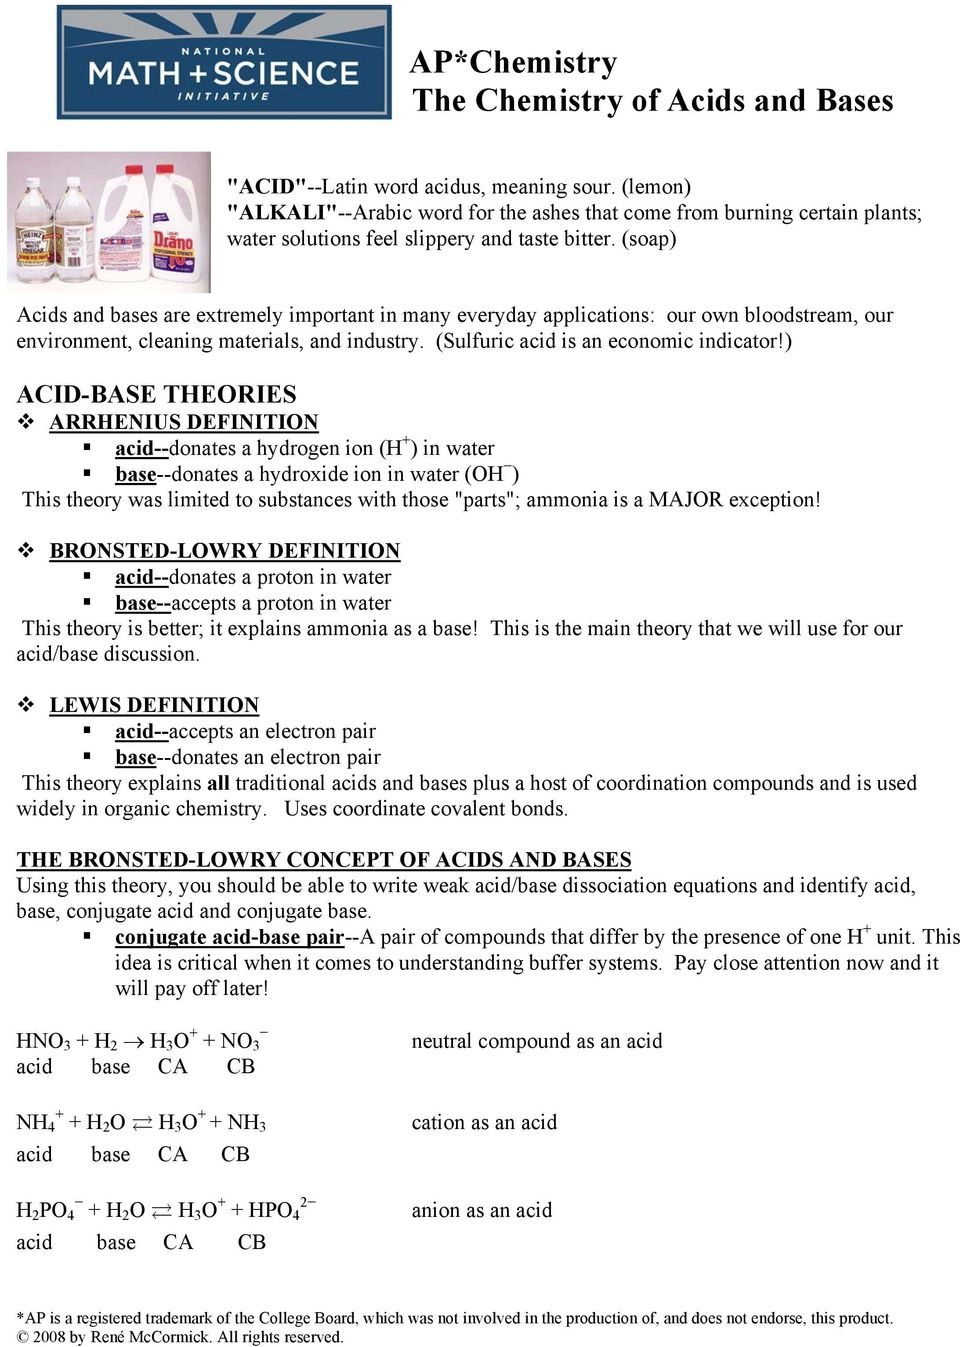 worksheet Bronsted Lowry Acids And Bases Worksheet Answers apchemistry the chemistry of acids and bases pdf soap are extremely important in many everyday applications our own